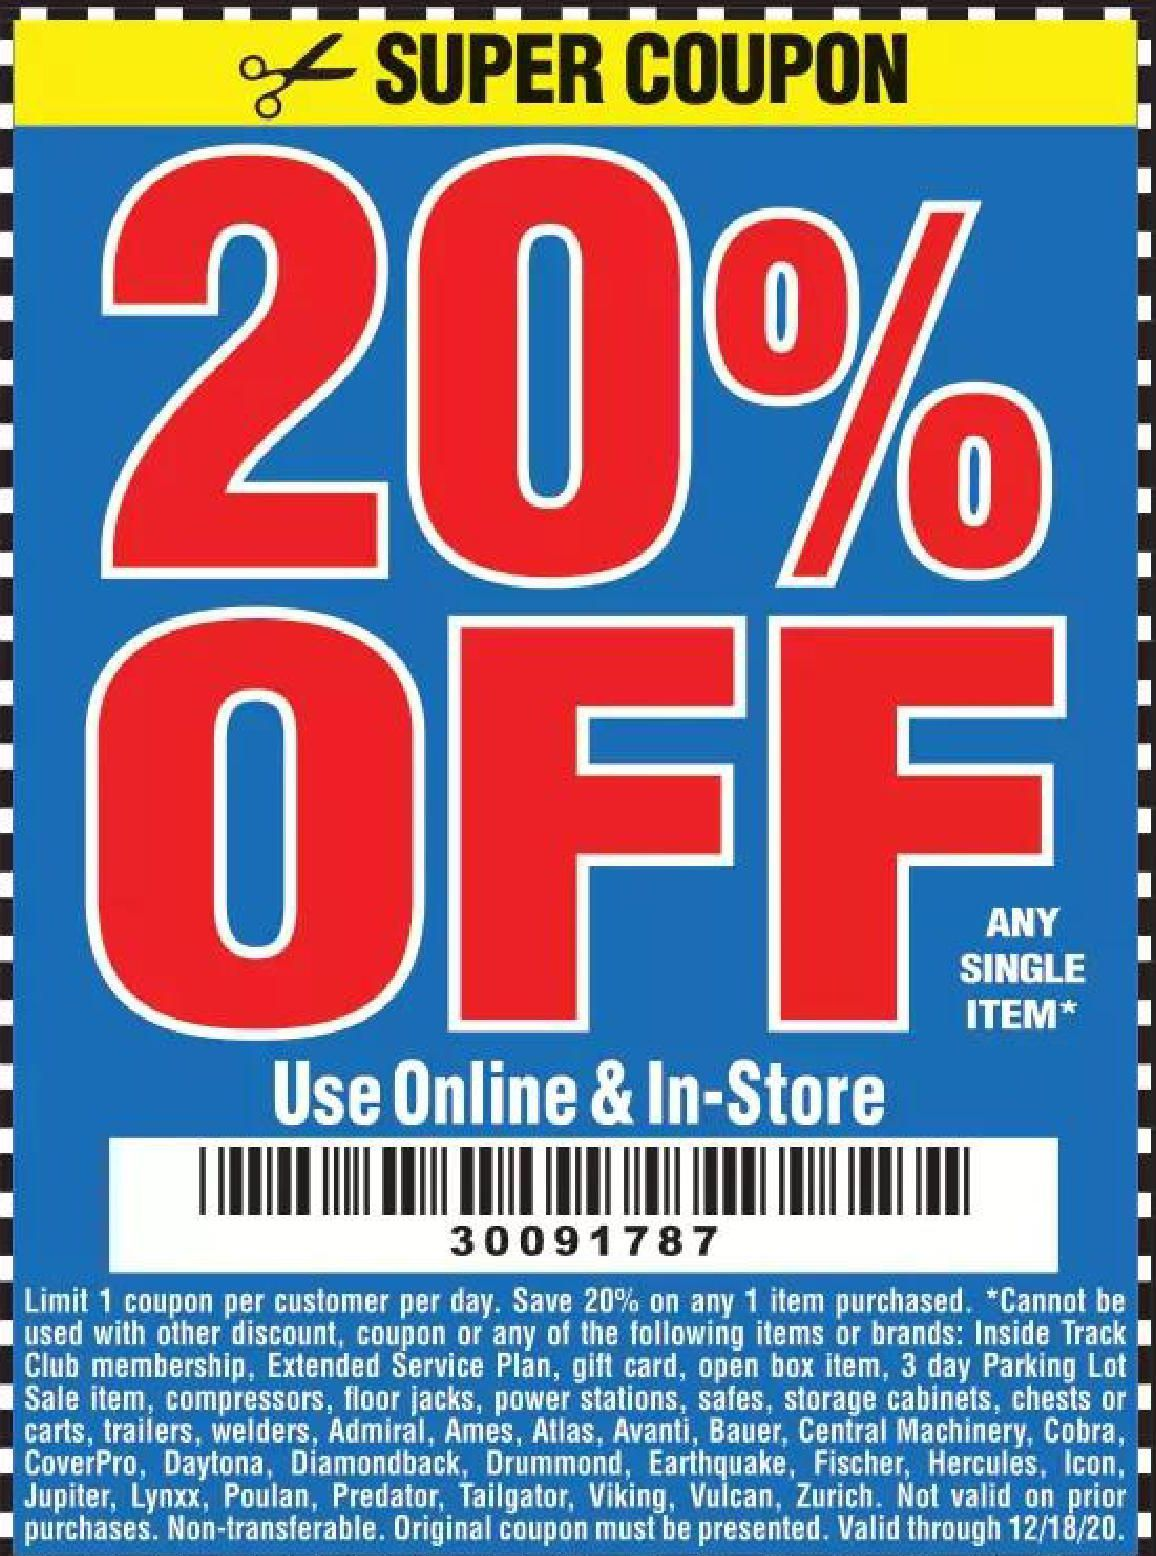 Harbor Freight Tools Coupon Database Free Coupons 25 Percent Off Coupons 20 Percent Off Coupons No Purc Harbor Freight Tools Harbor Freight Coupon Coupons